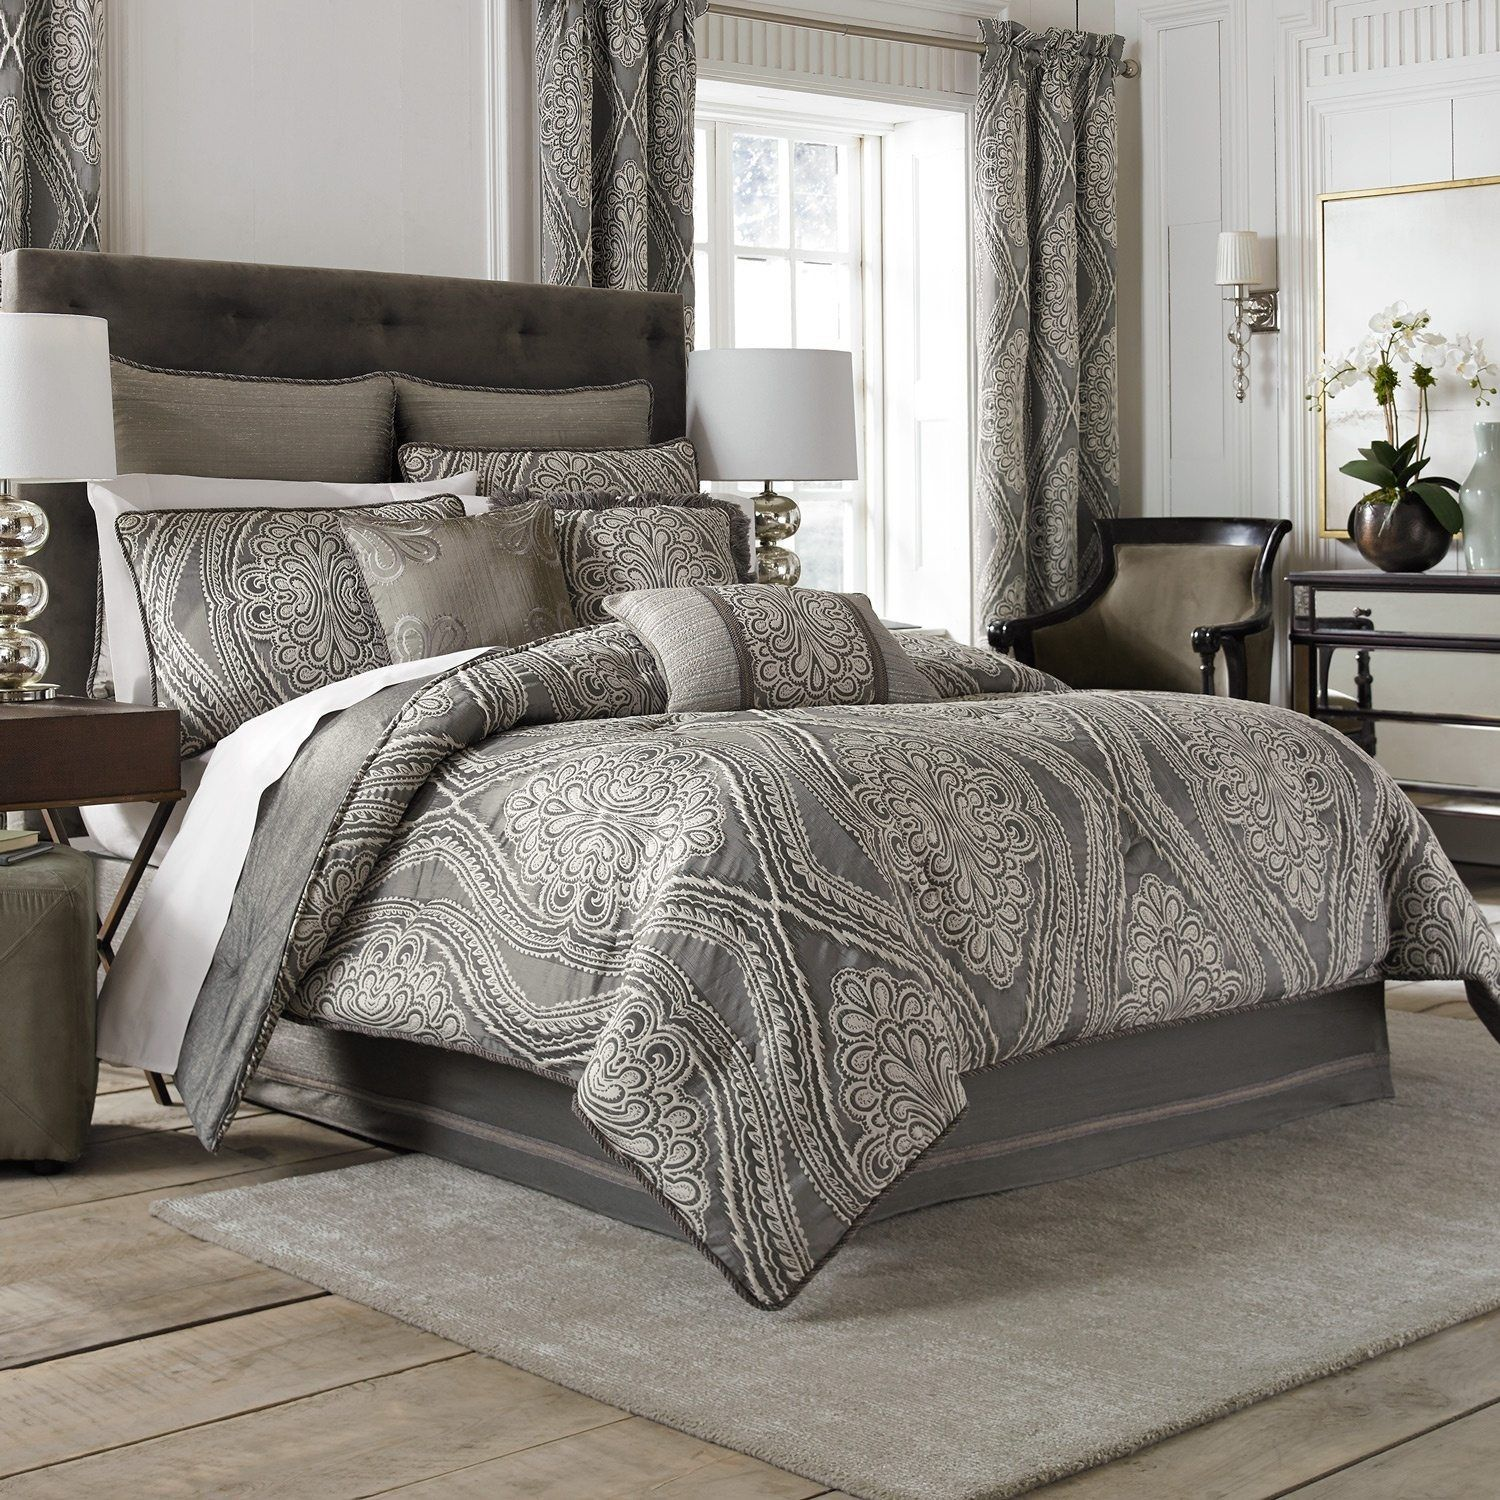 diner brickrooms attractive sets with beautiful queen ideas king duvet comforters page teal smart bedding size curtain bedspreads luxury of bedpreads match full interior flowconference gold blue check black matching linen to and design curtains discount covers cheap comforter